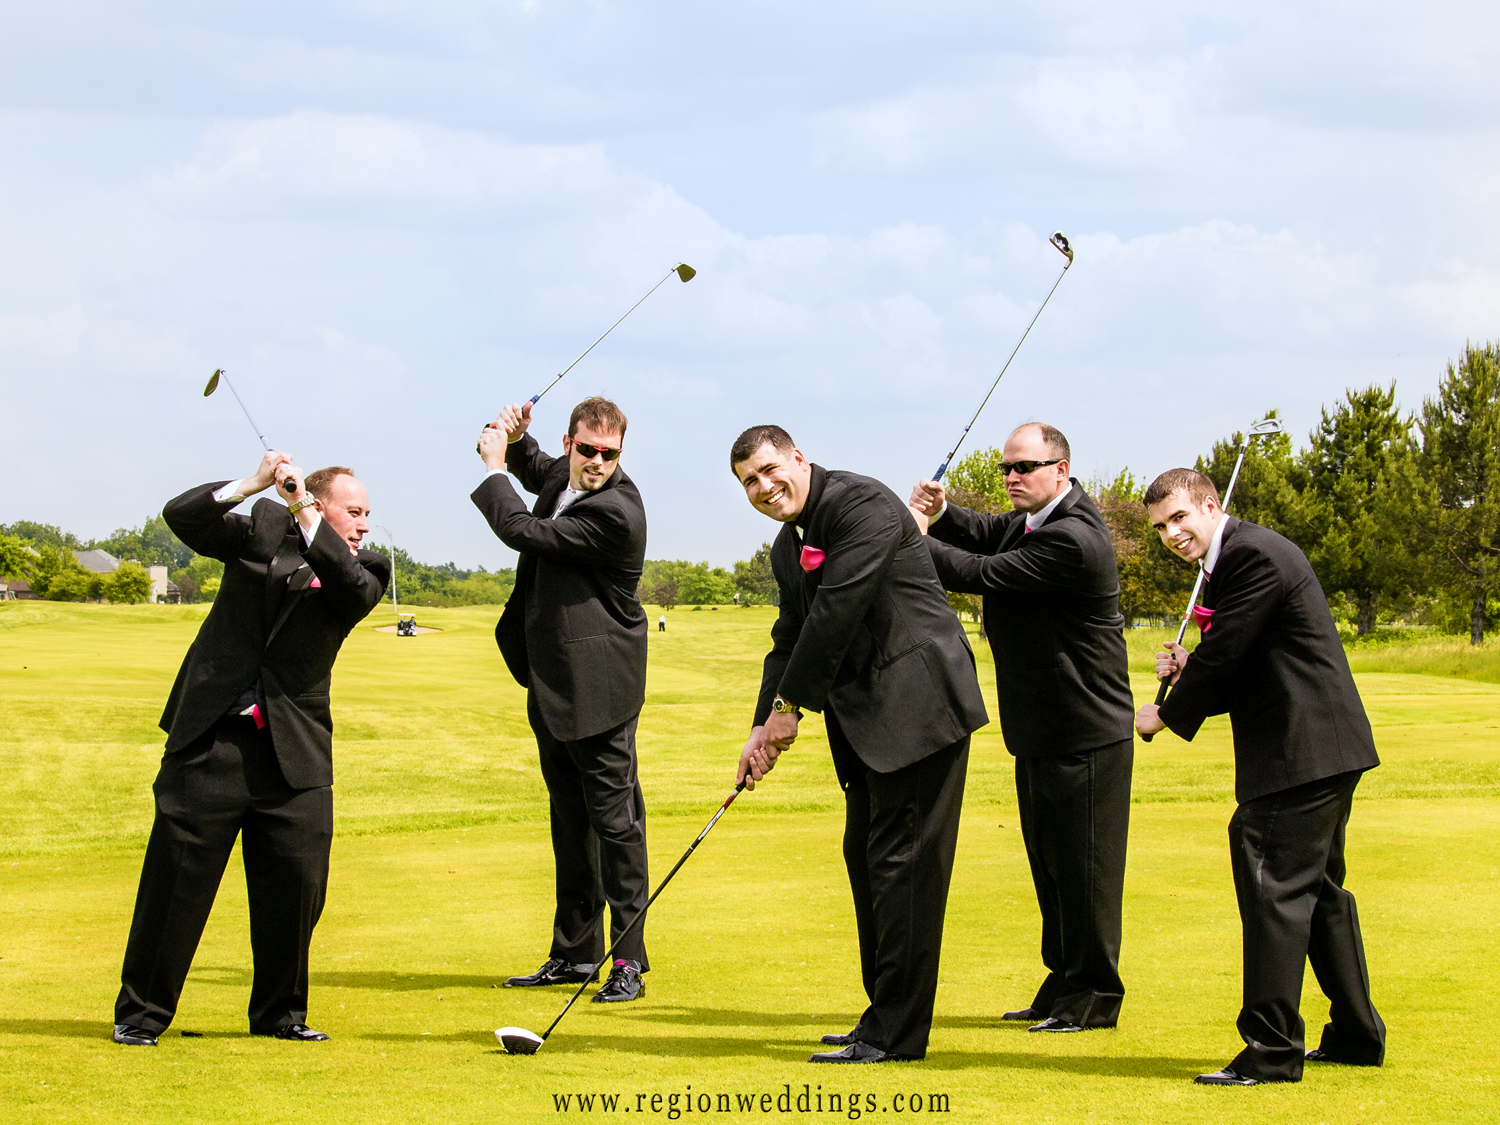 The groomsmen attack the groom with golf clubs for this fun wedding photo at White Hawk Country Club.